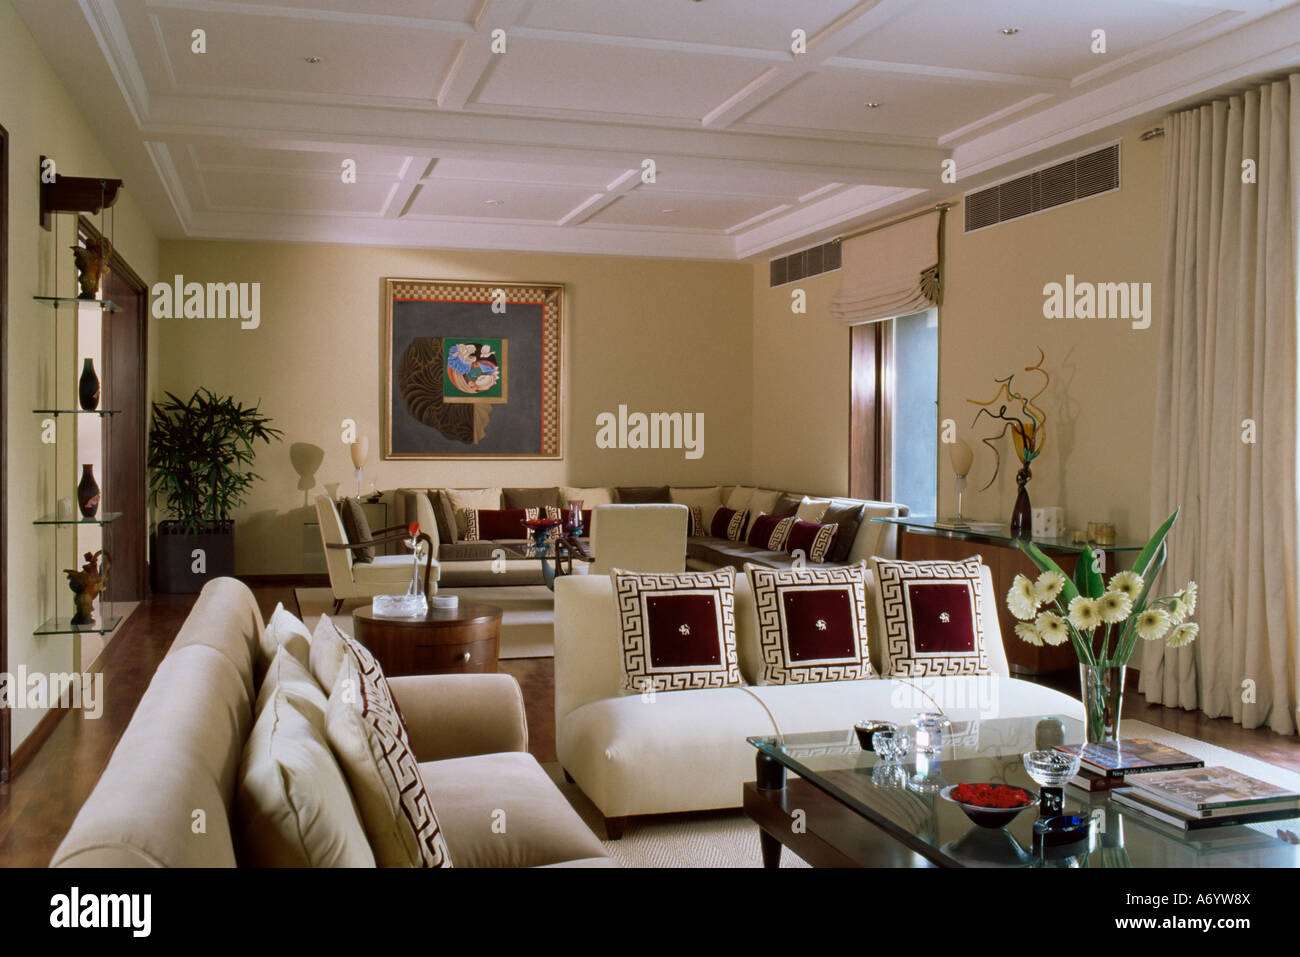 The Contemporary Home Of A Wealthy Owner From India S